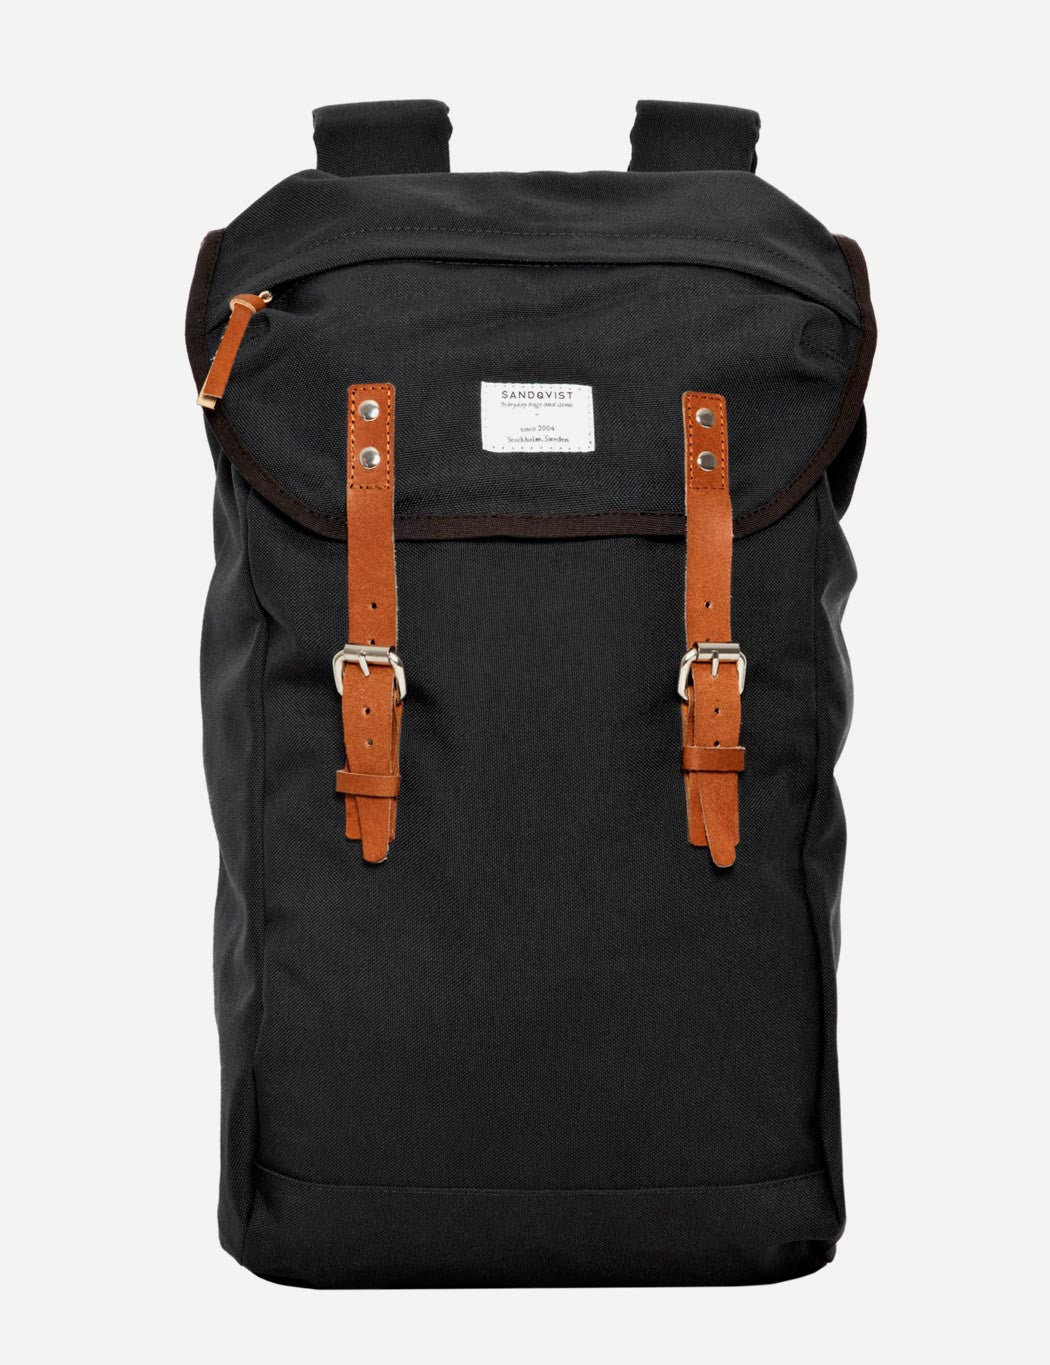 Sandqvist Hans Backpack - Black